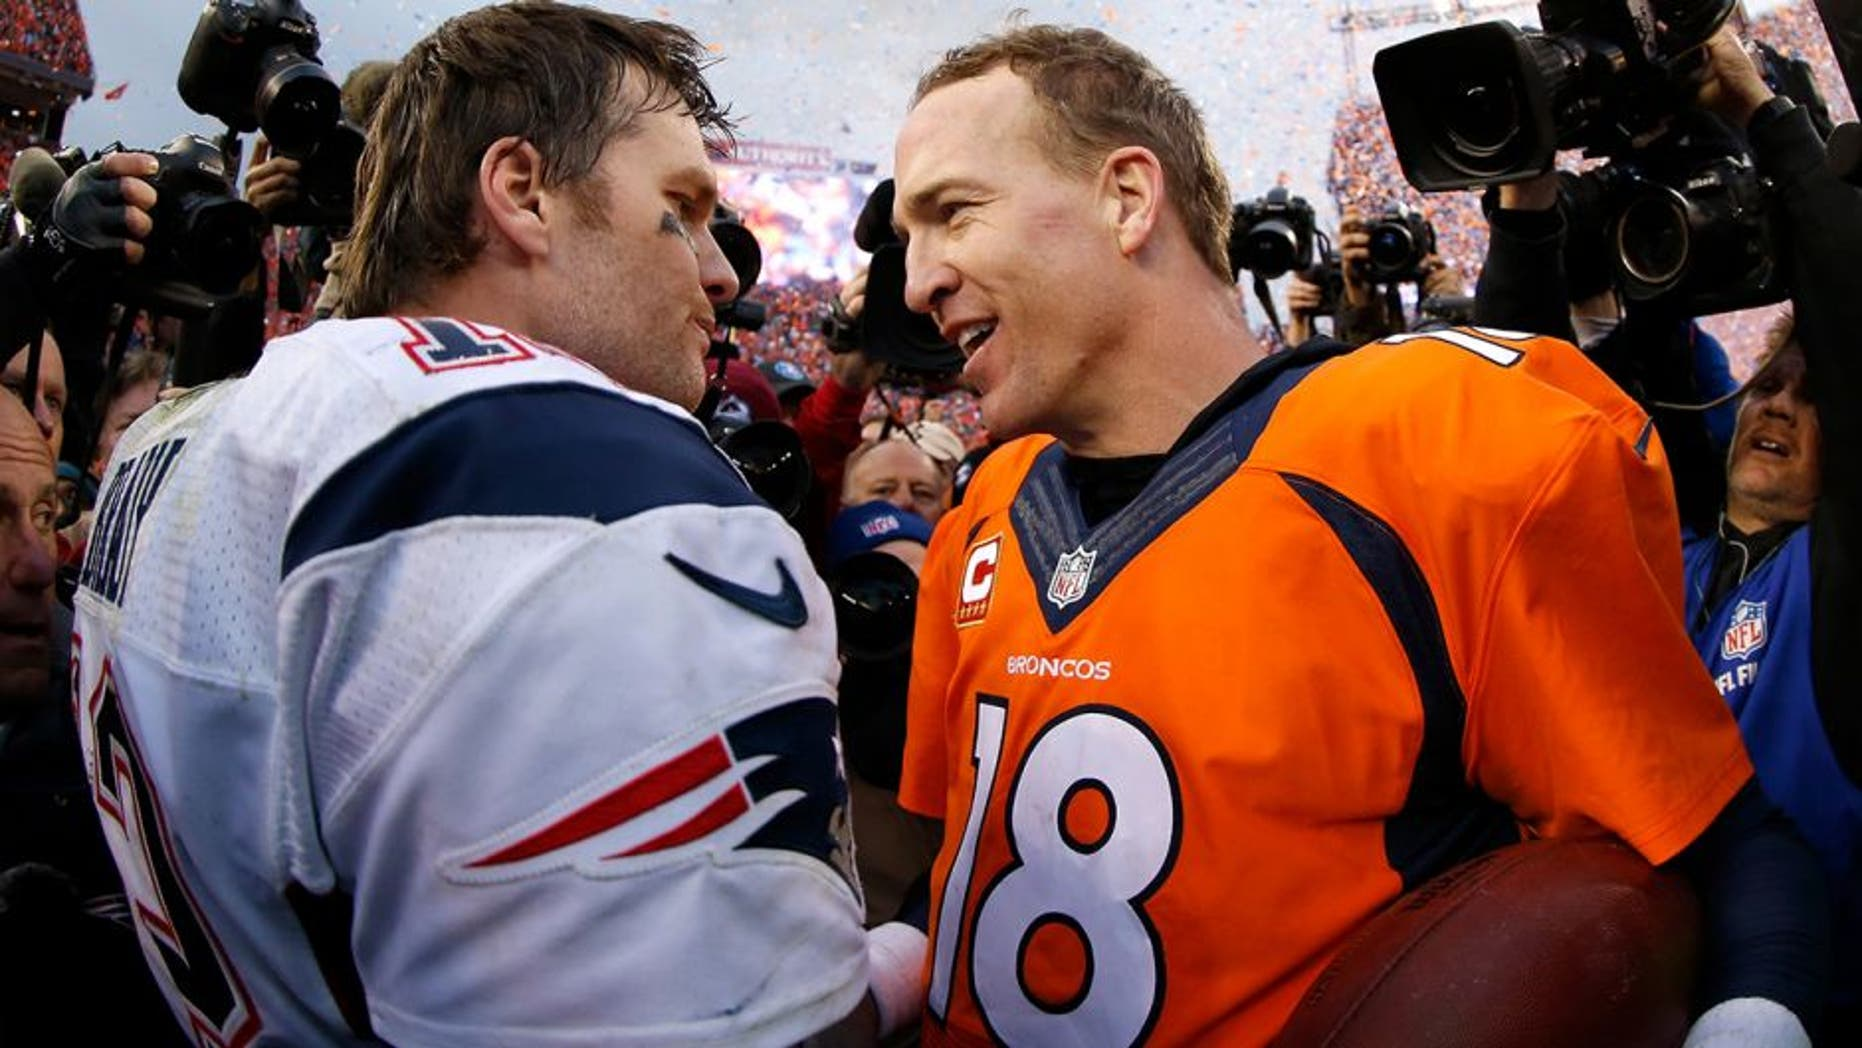 DENVER, CO - JANUARY 24: Peyton Manning #18 of the Denver Broncos and Tom Brady #12 of the New England Patriots speak after the AFC Championship game at Sports Authority Field at Mile High on January 24, 2016 in Denver, Colorado. The Broncos defeated the Patriots 20-18. (Photo by Ezra Shaw/Getty Images)